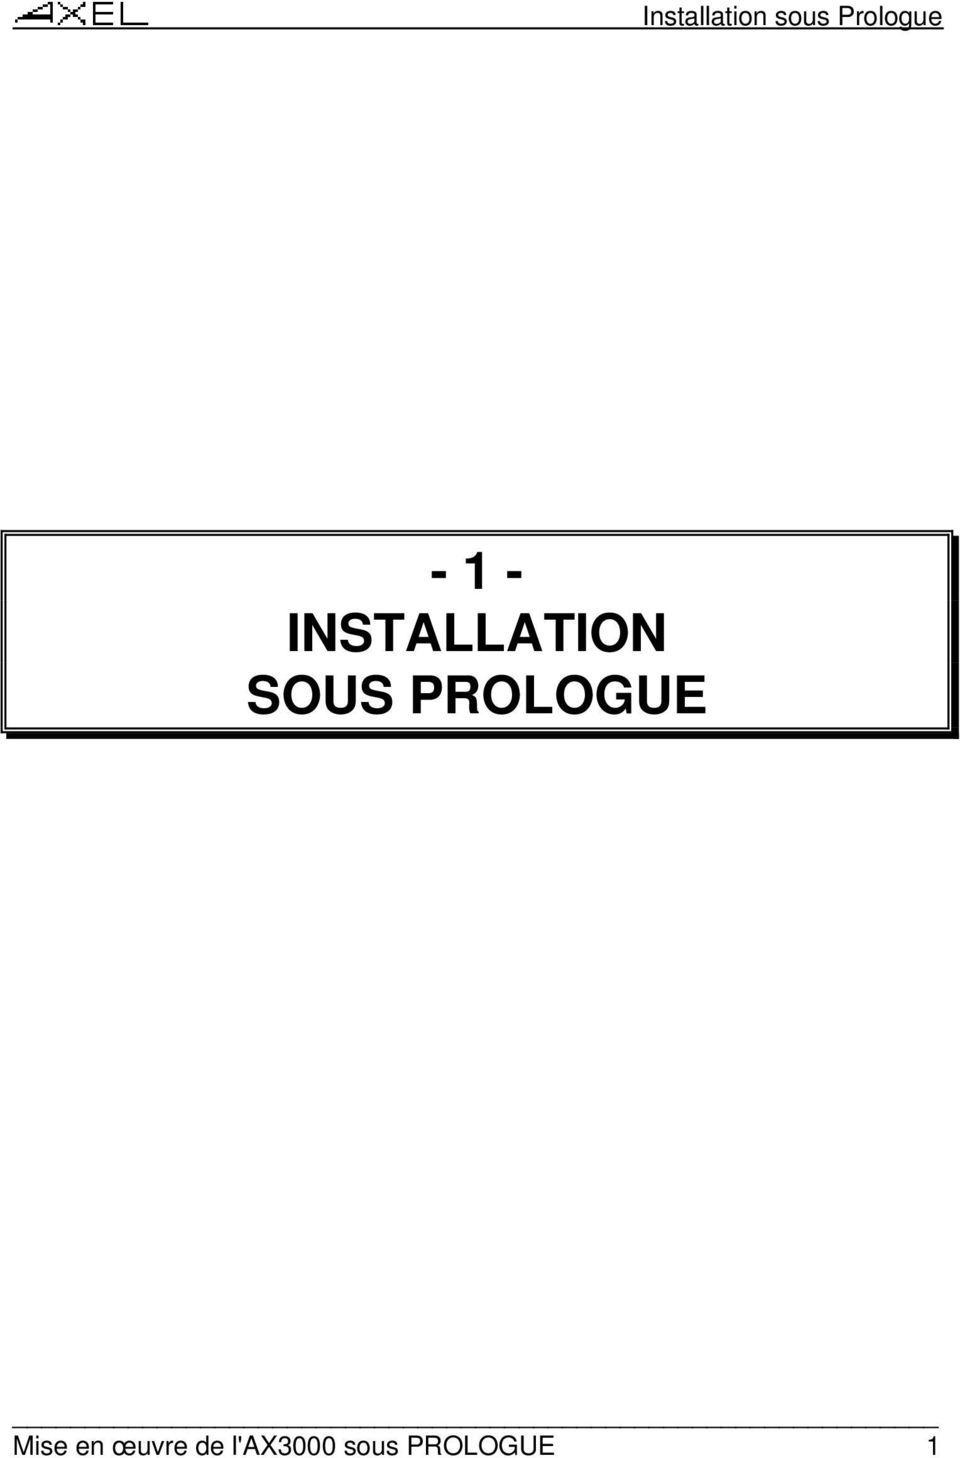 INSTALLATION SOUS